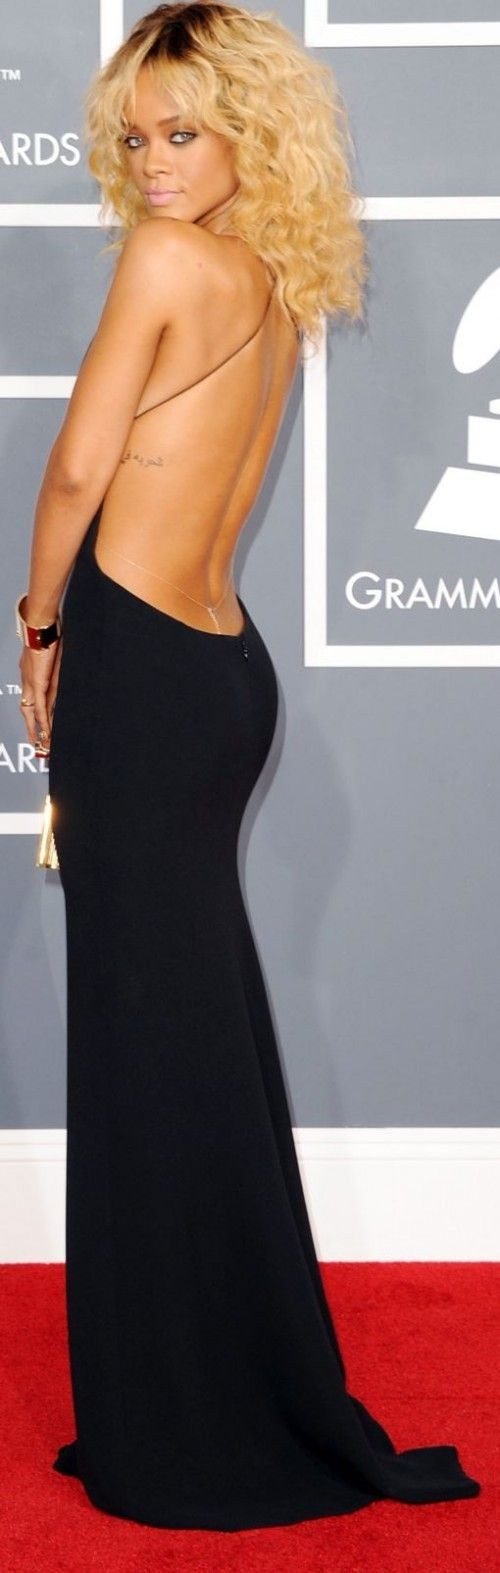 I loved Rihanna with this look. I definitely will not be looking for this dress, but I loved it along with her hair!